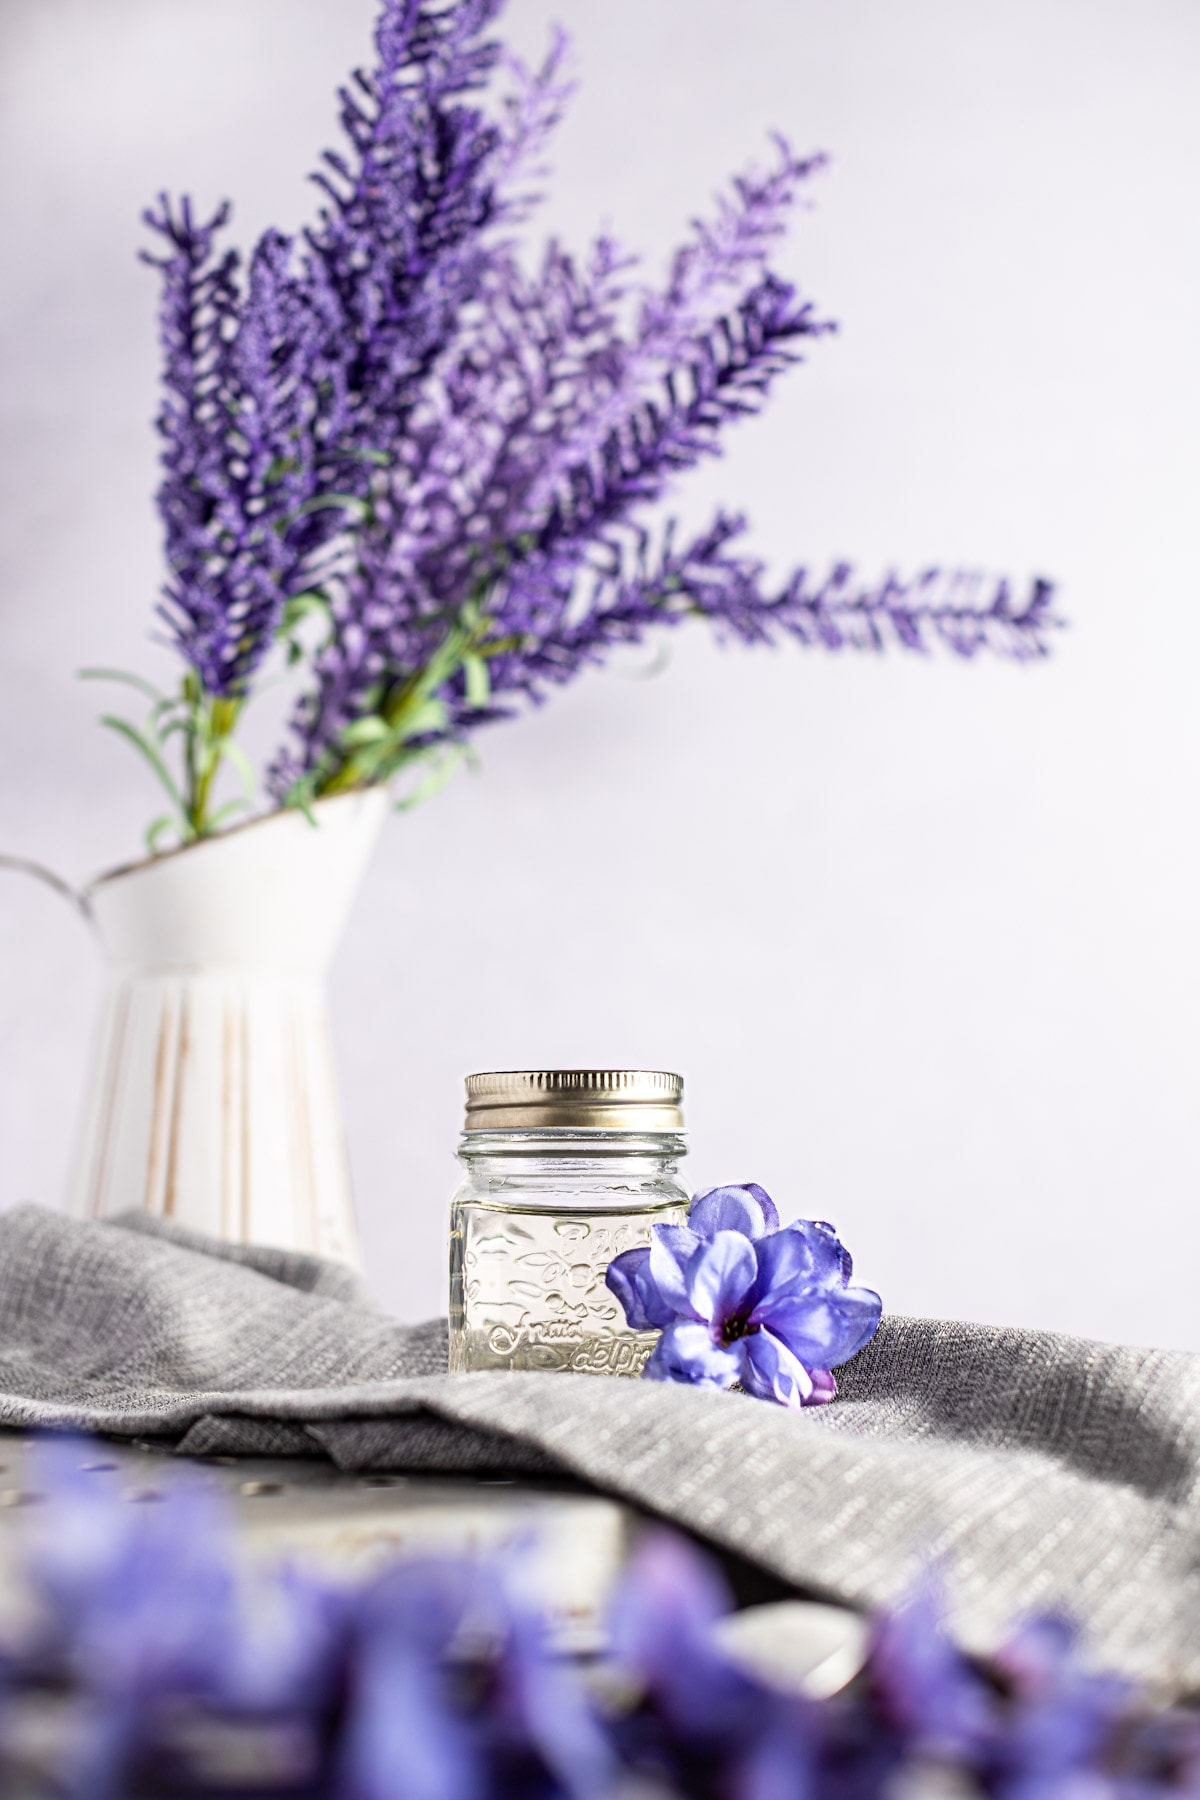 Jar of lavender syrup on a grey napkin, with purple lavender in the foreground, on a light grey background.